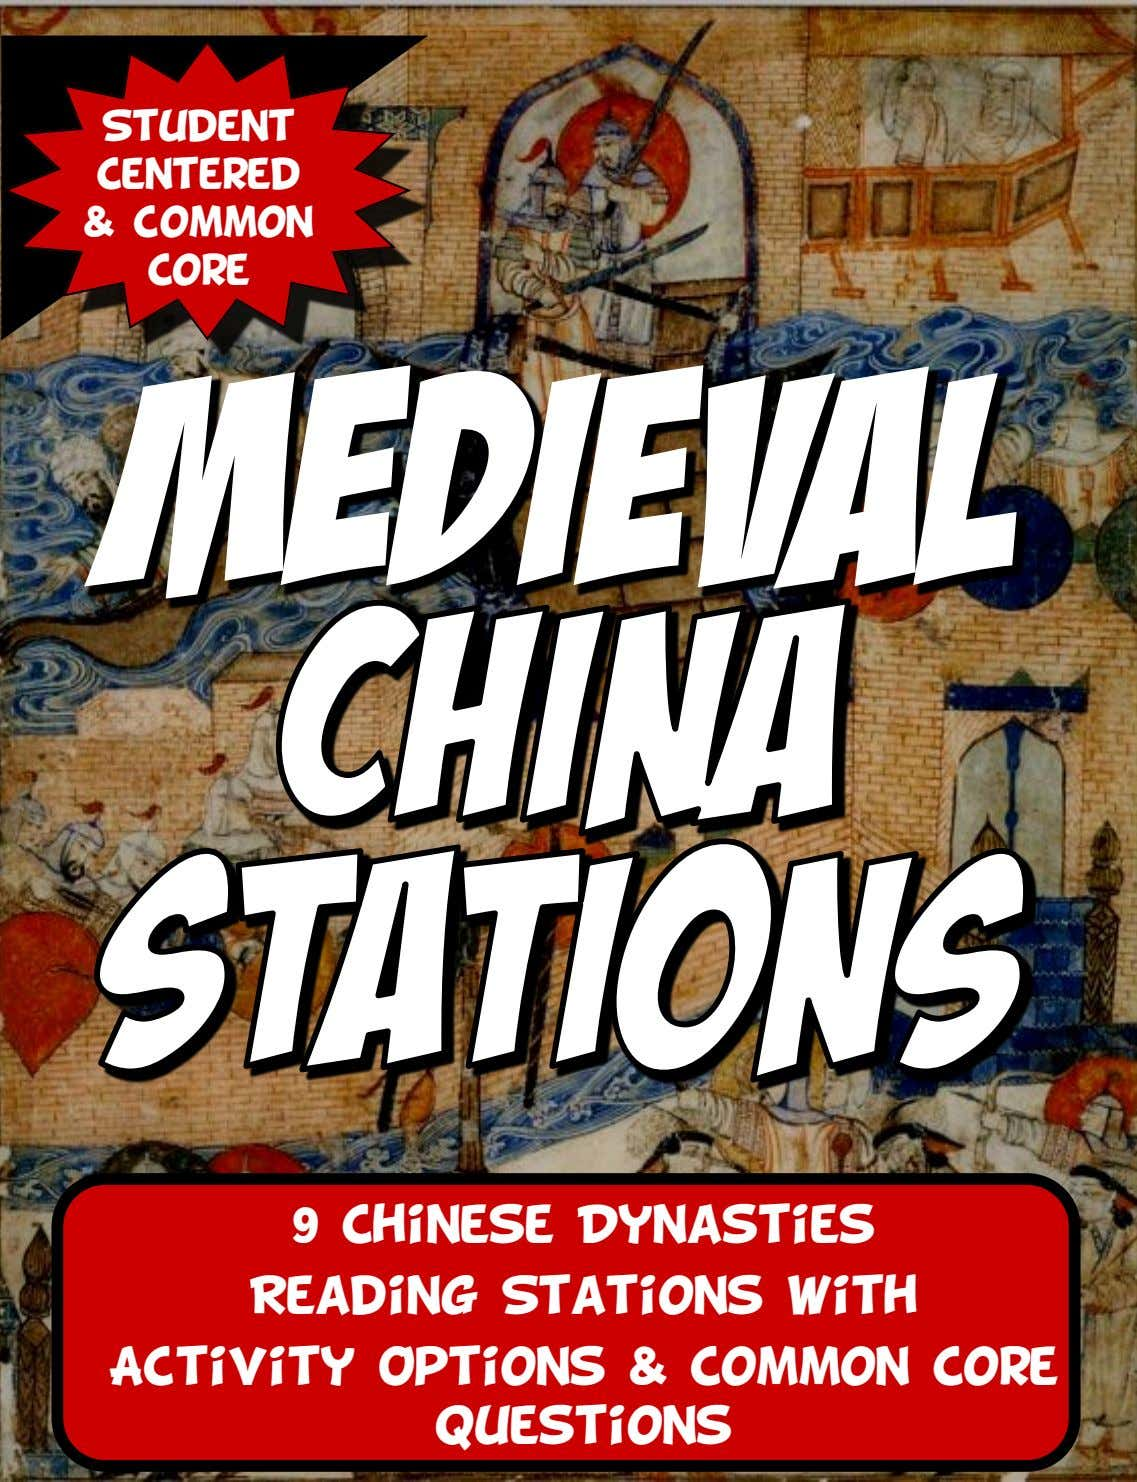 Student Centered & common Core 9 Chinese Dynasties Reading Stations with Activity Options & Common Core